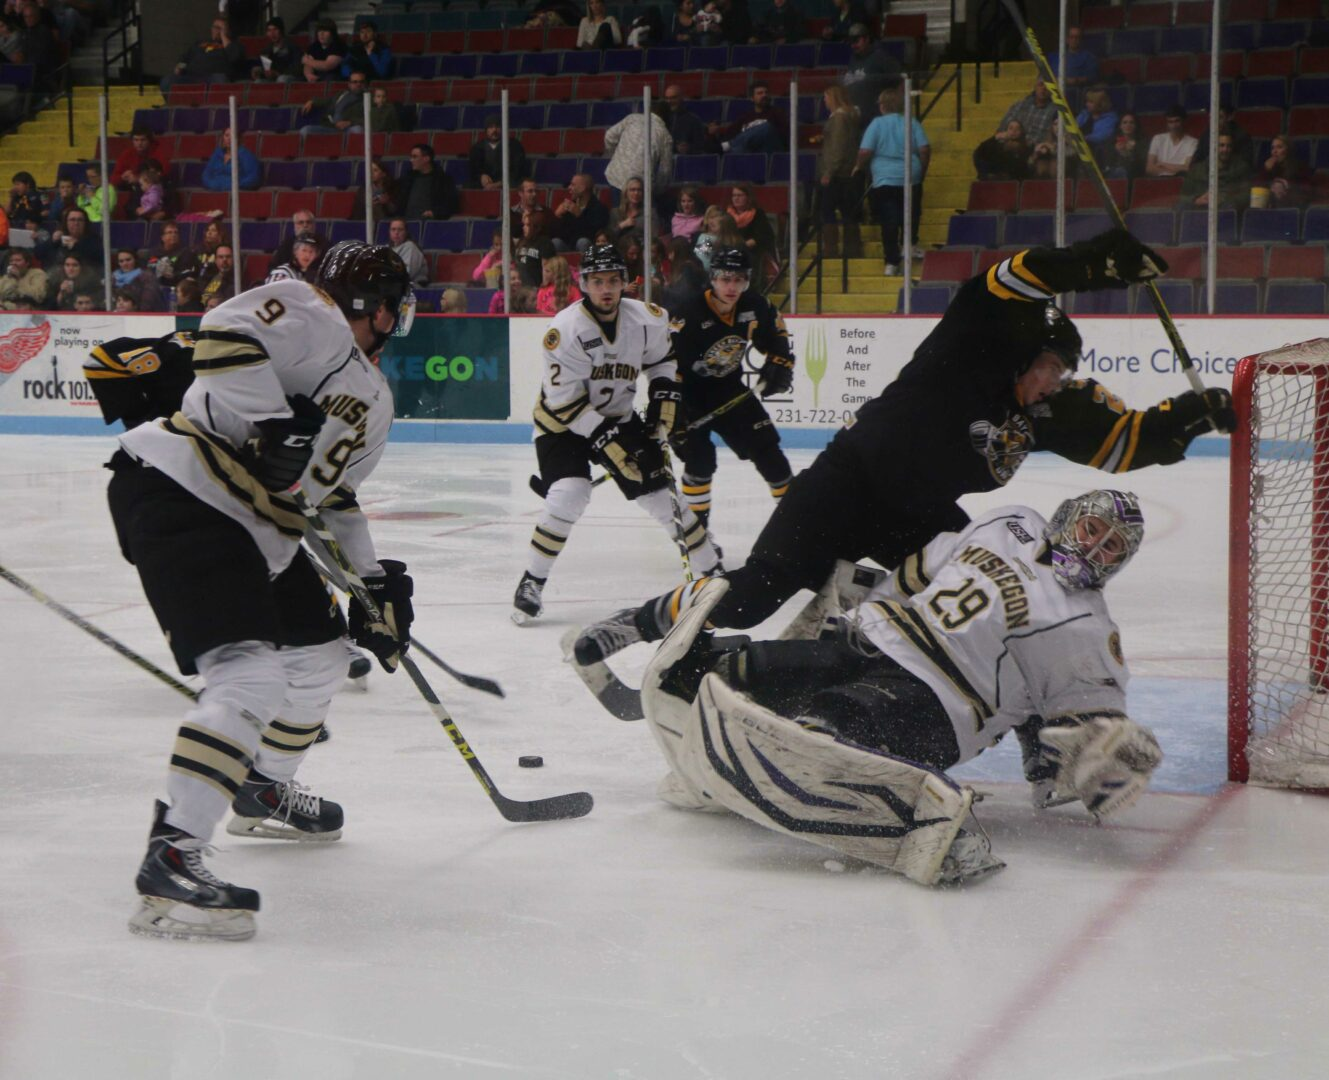 Lumberjacks' home ice woes continue with a 4-2 loss to Green Bay